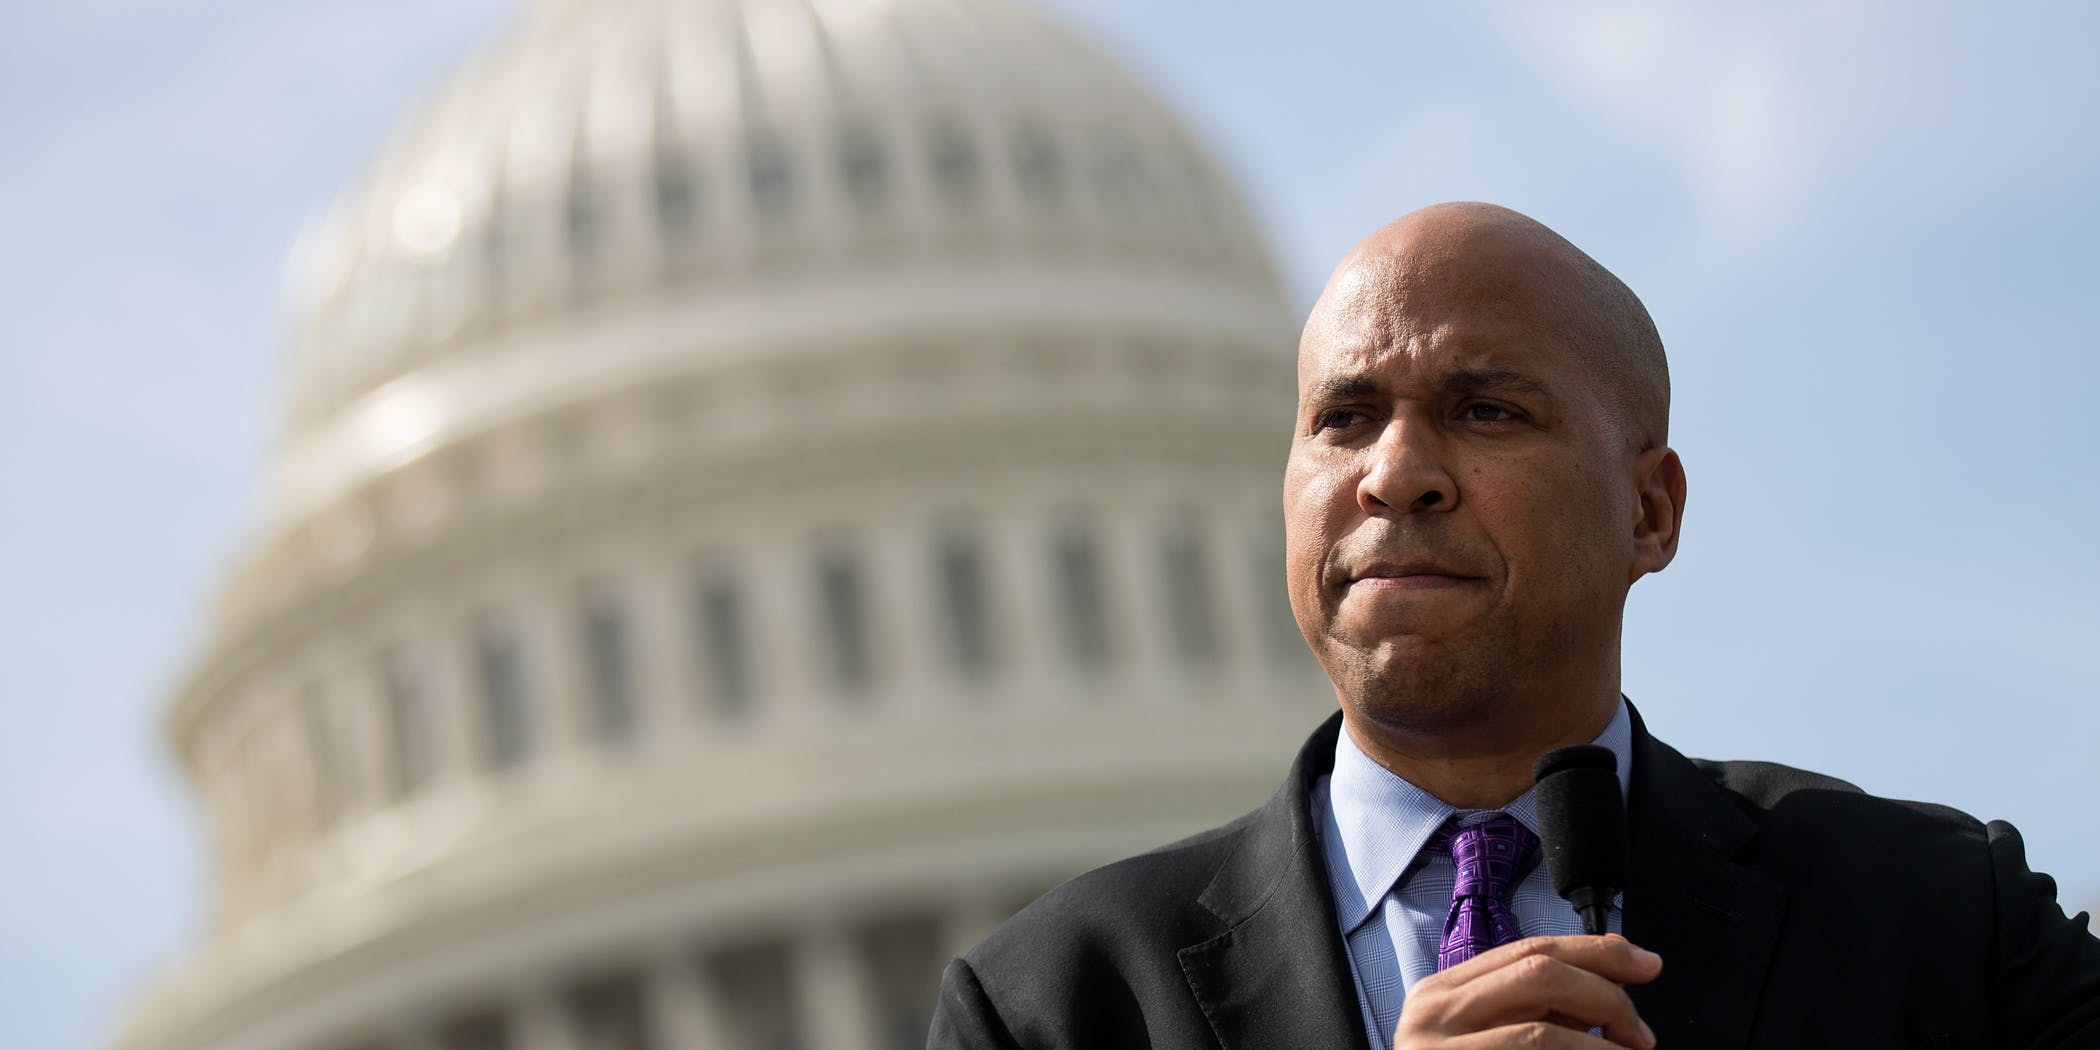 High-ranking Democrats like New Jersey Senator Cory Booker have put their weight behind the push to legalize weed.